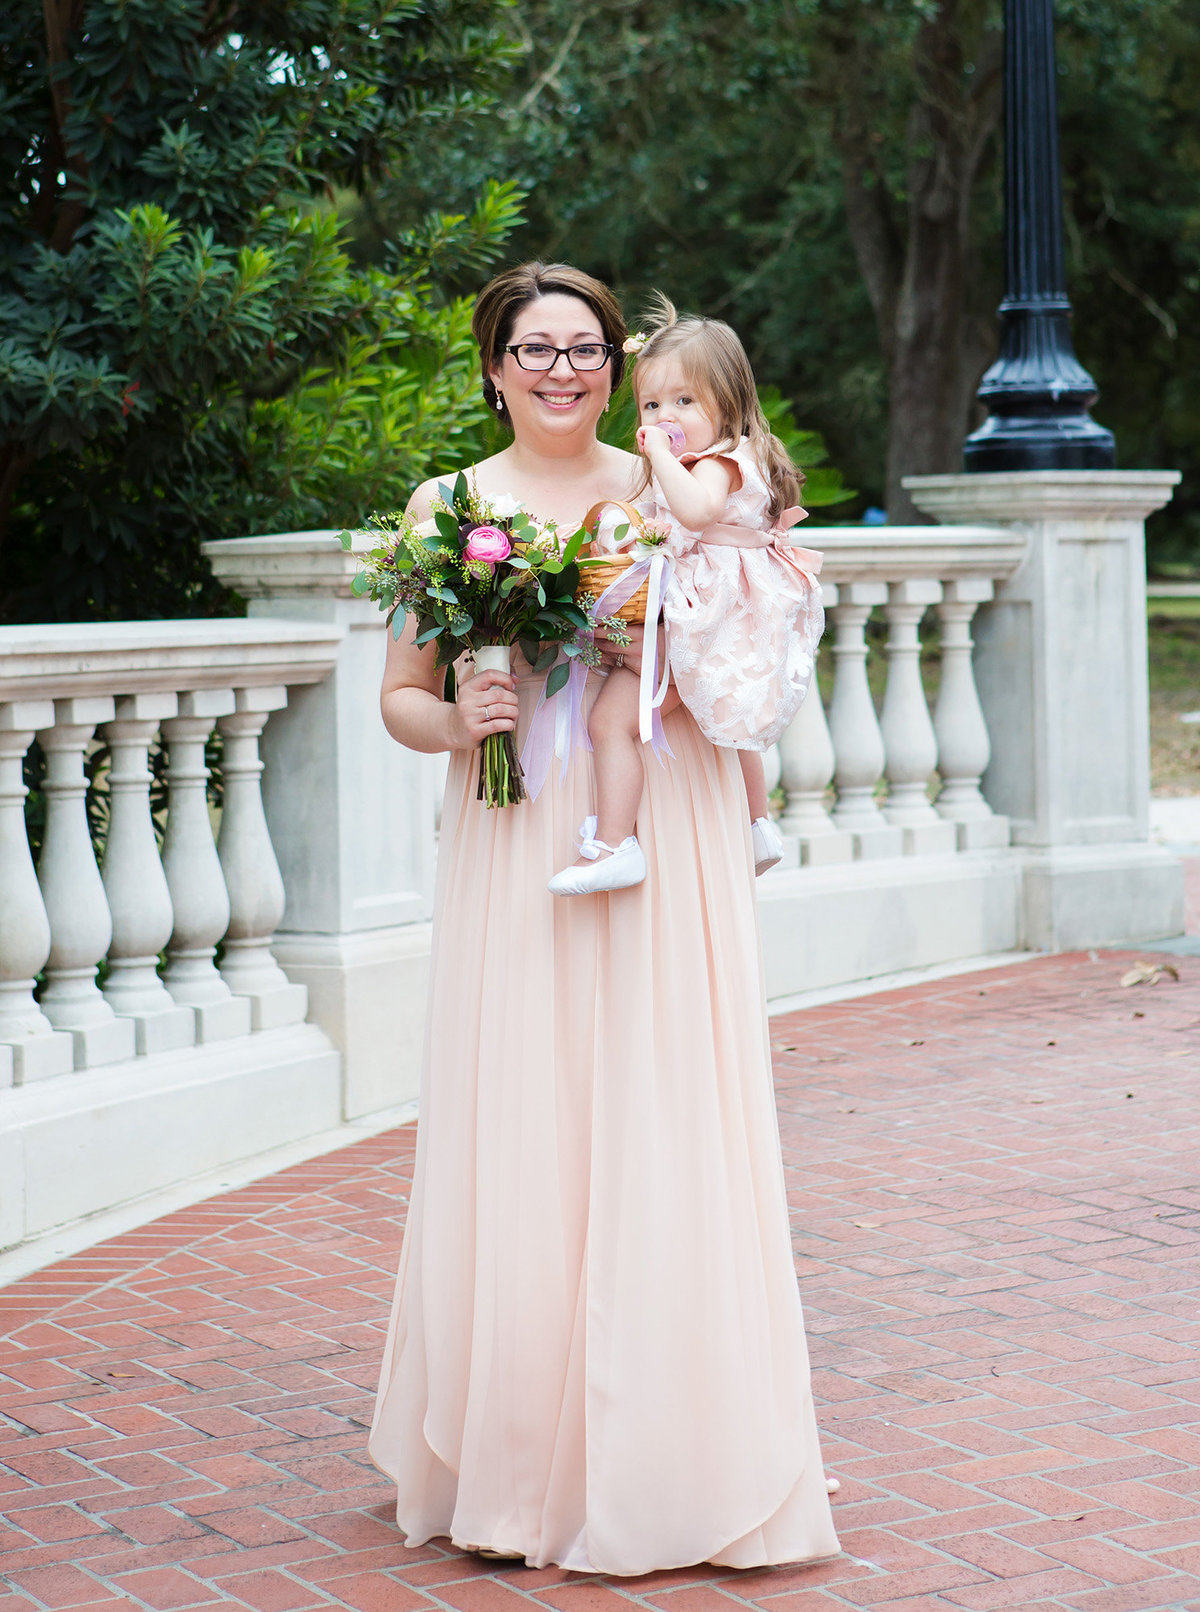 NOLA bridesmaid with daughter walking down the cement pathway to wedding ceremony in Audubon Park